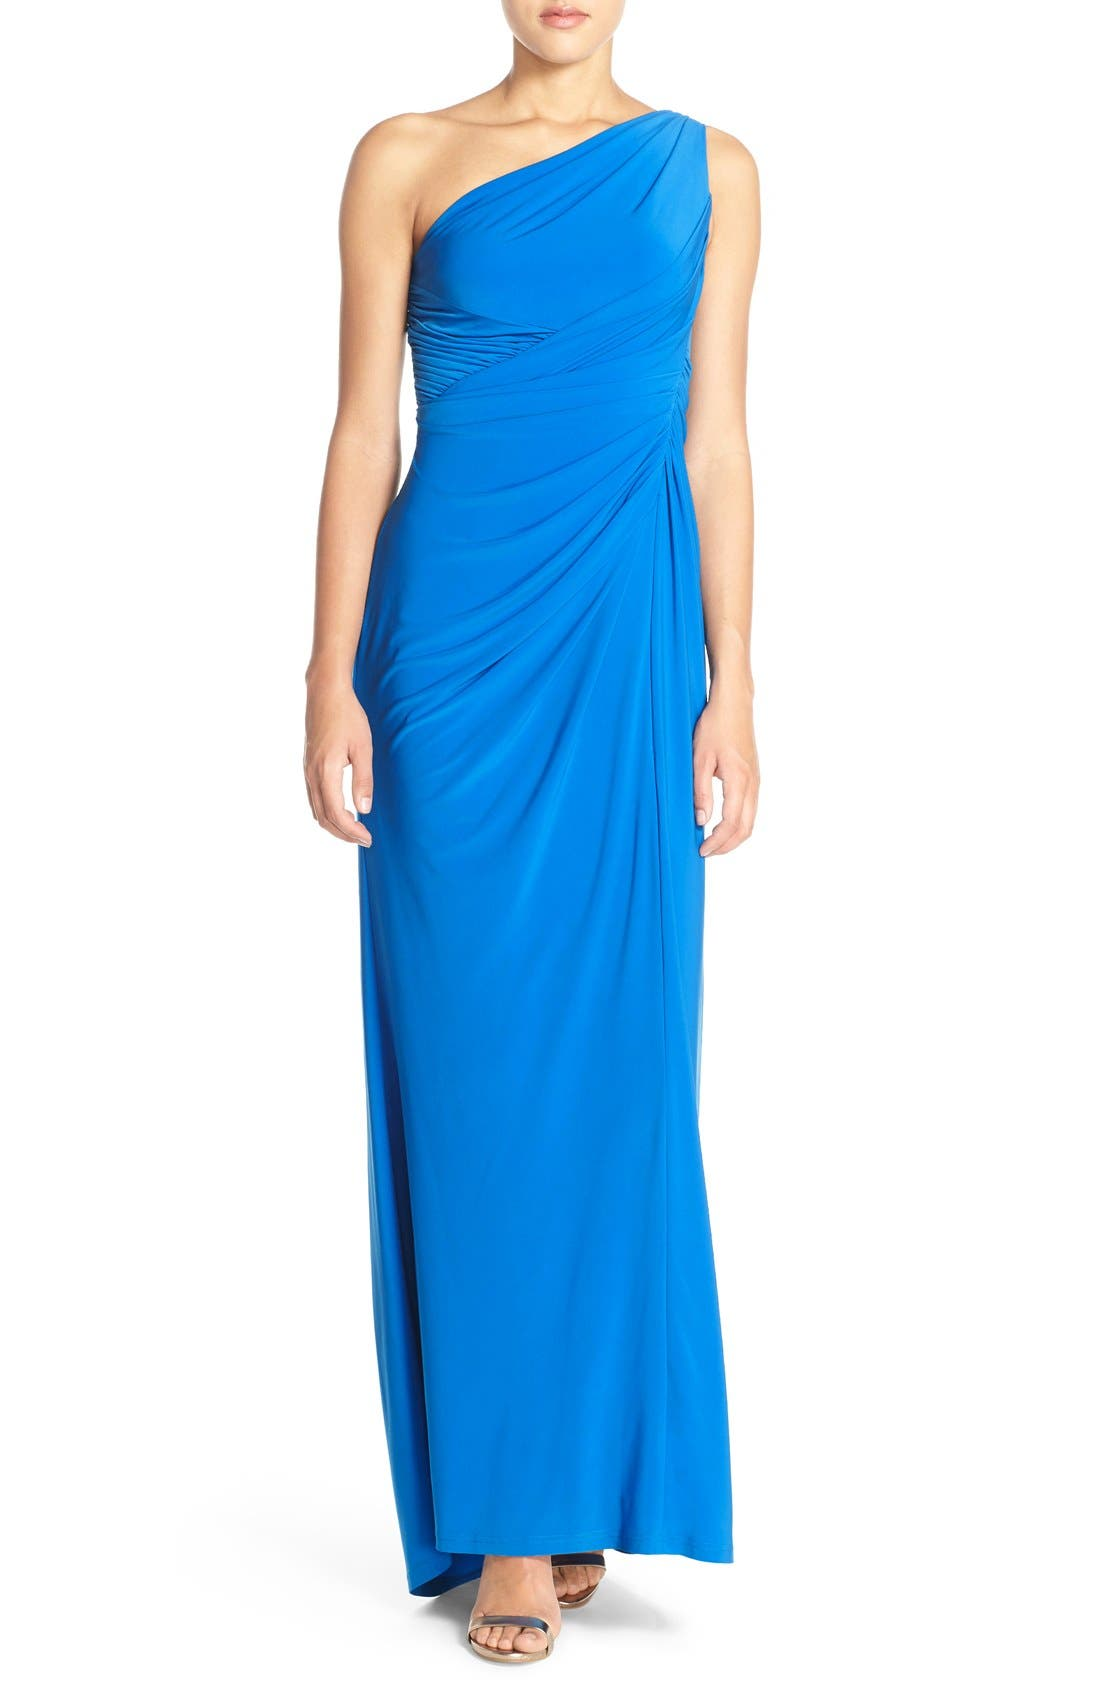 Alternate Image 1 Selected - Adrianna Papell One-Shoulder Draped Jersey Gown